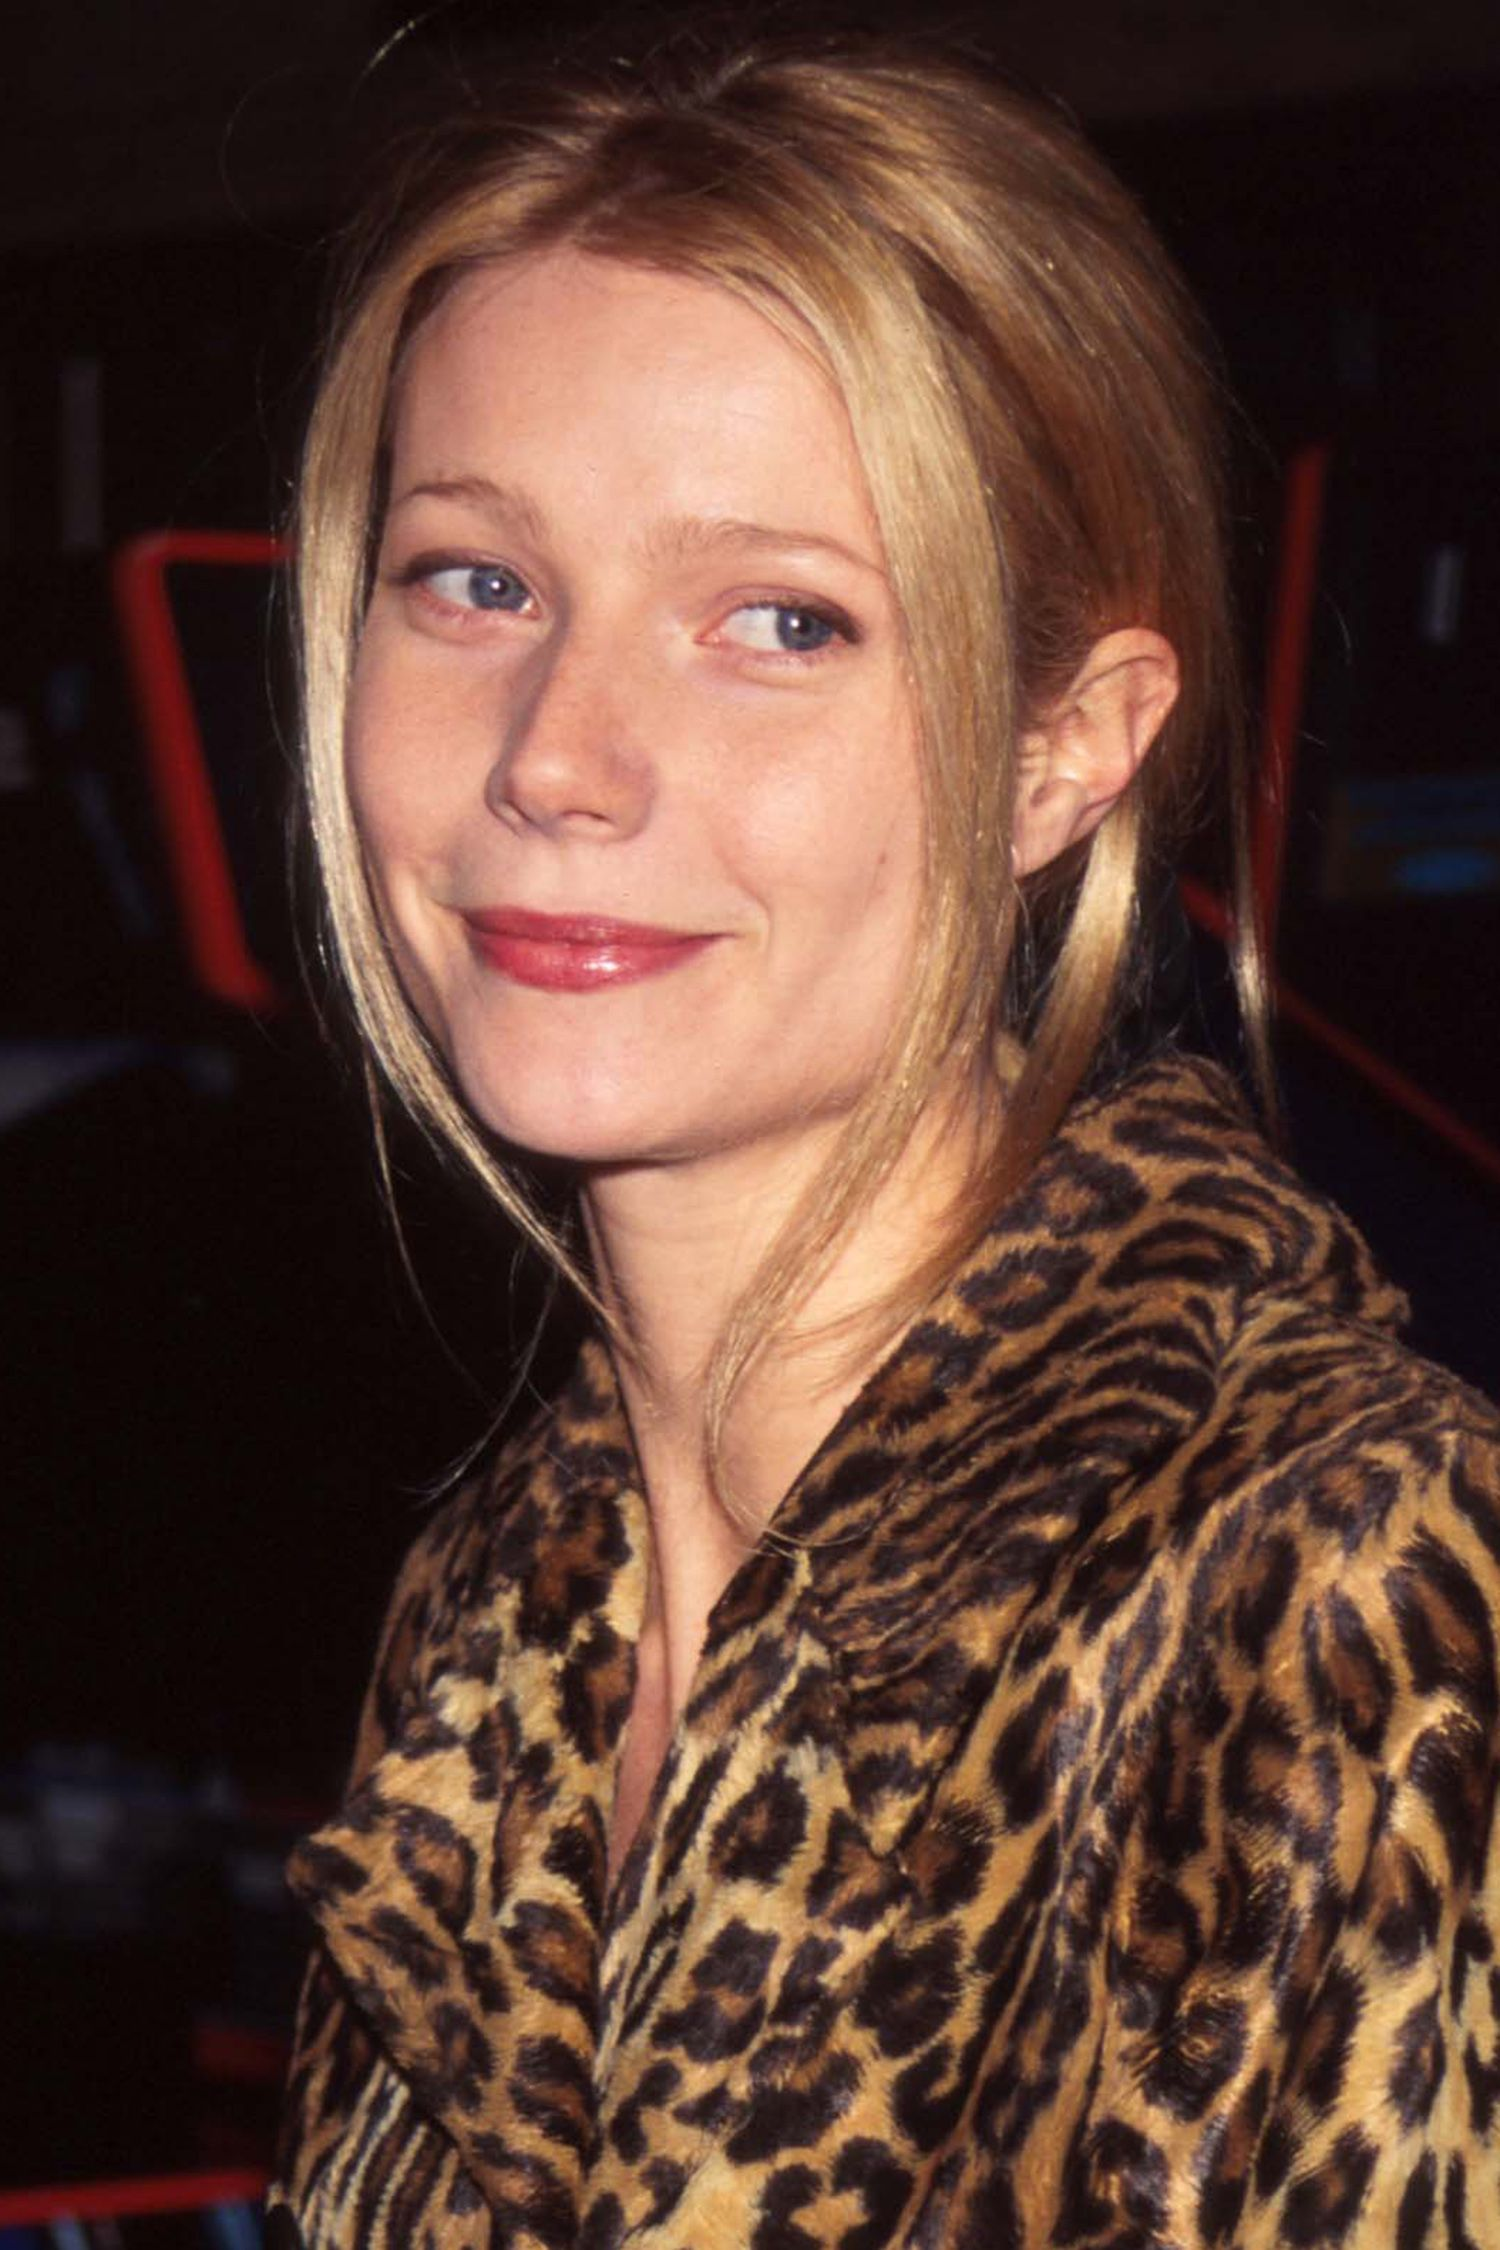 "257988 05: Actress Gwyneth Paltrow attends the premiere of ""Catwalk"" February 11, 1996 in New York City. The film documents Christy Turlington's exploits on and off the runway at several Spring fashion shows. (Photo by Evan Agostini/Liaison)"